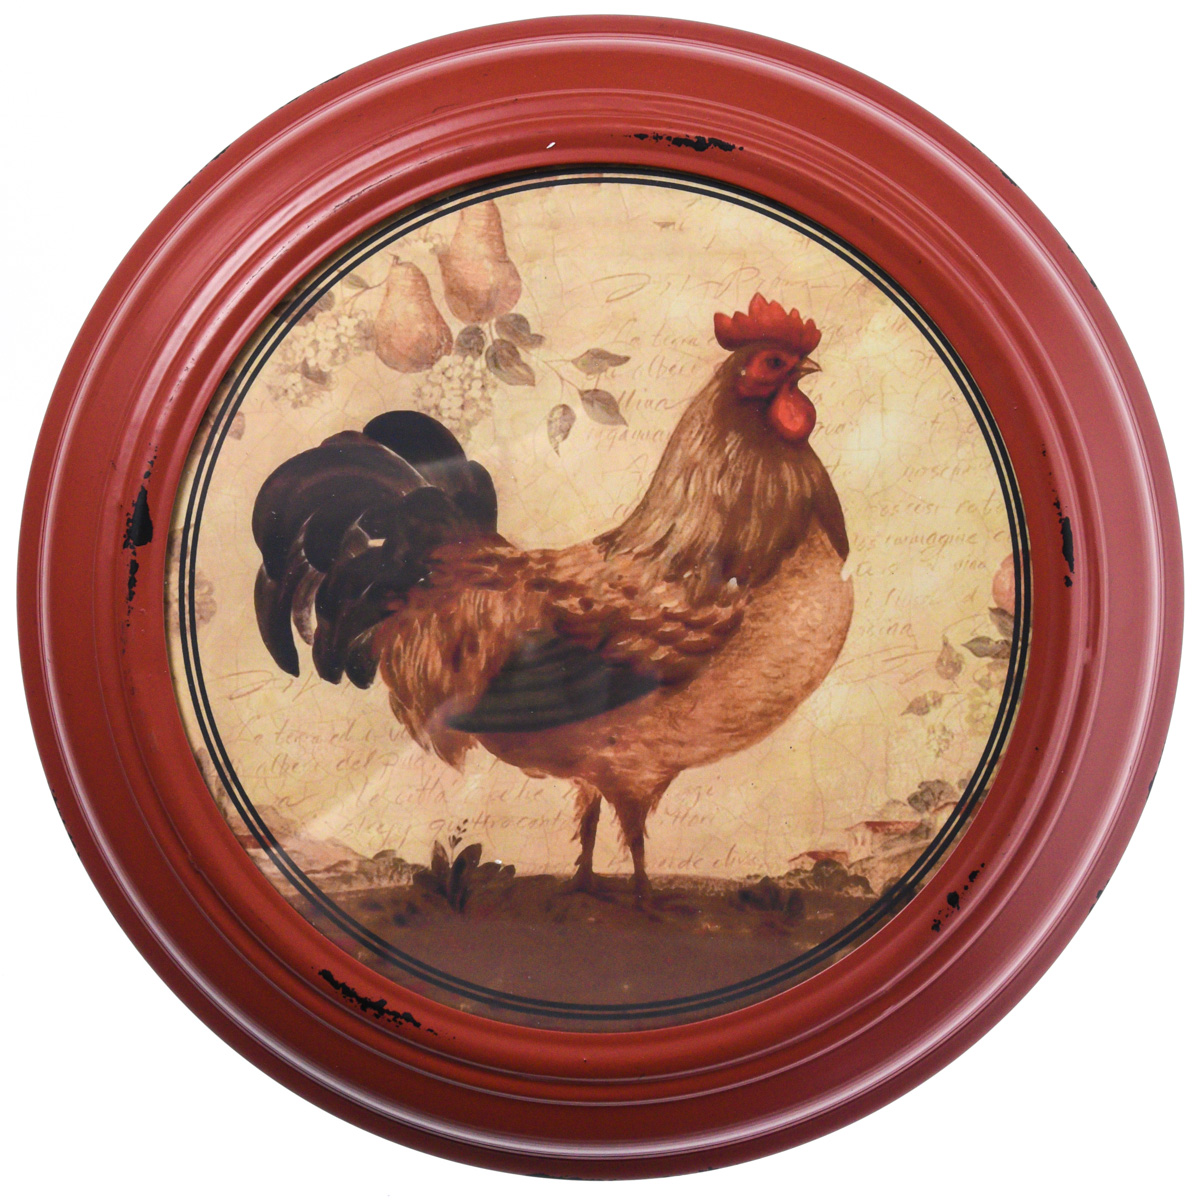 Framed Rooster Print Wall Decor - Red  sc 1 st  Cracker Barrel & Rooster | Collections - Cracker Barrel Old Country Store